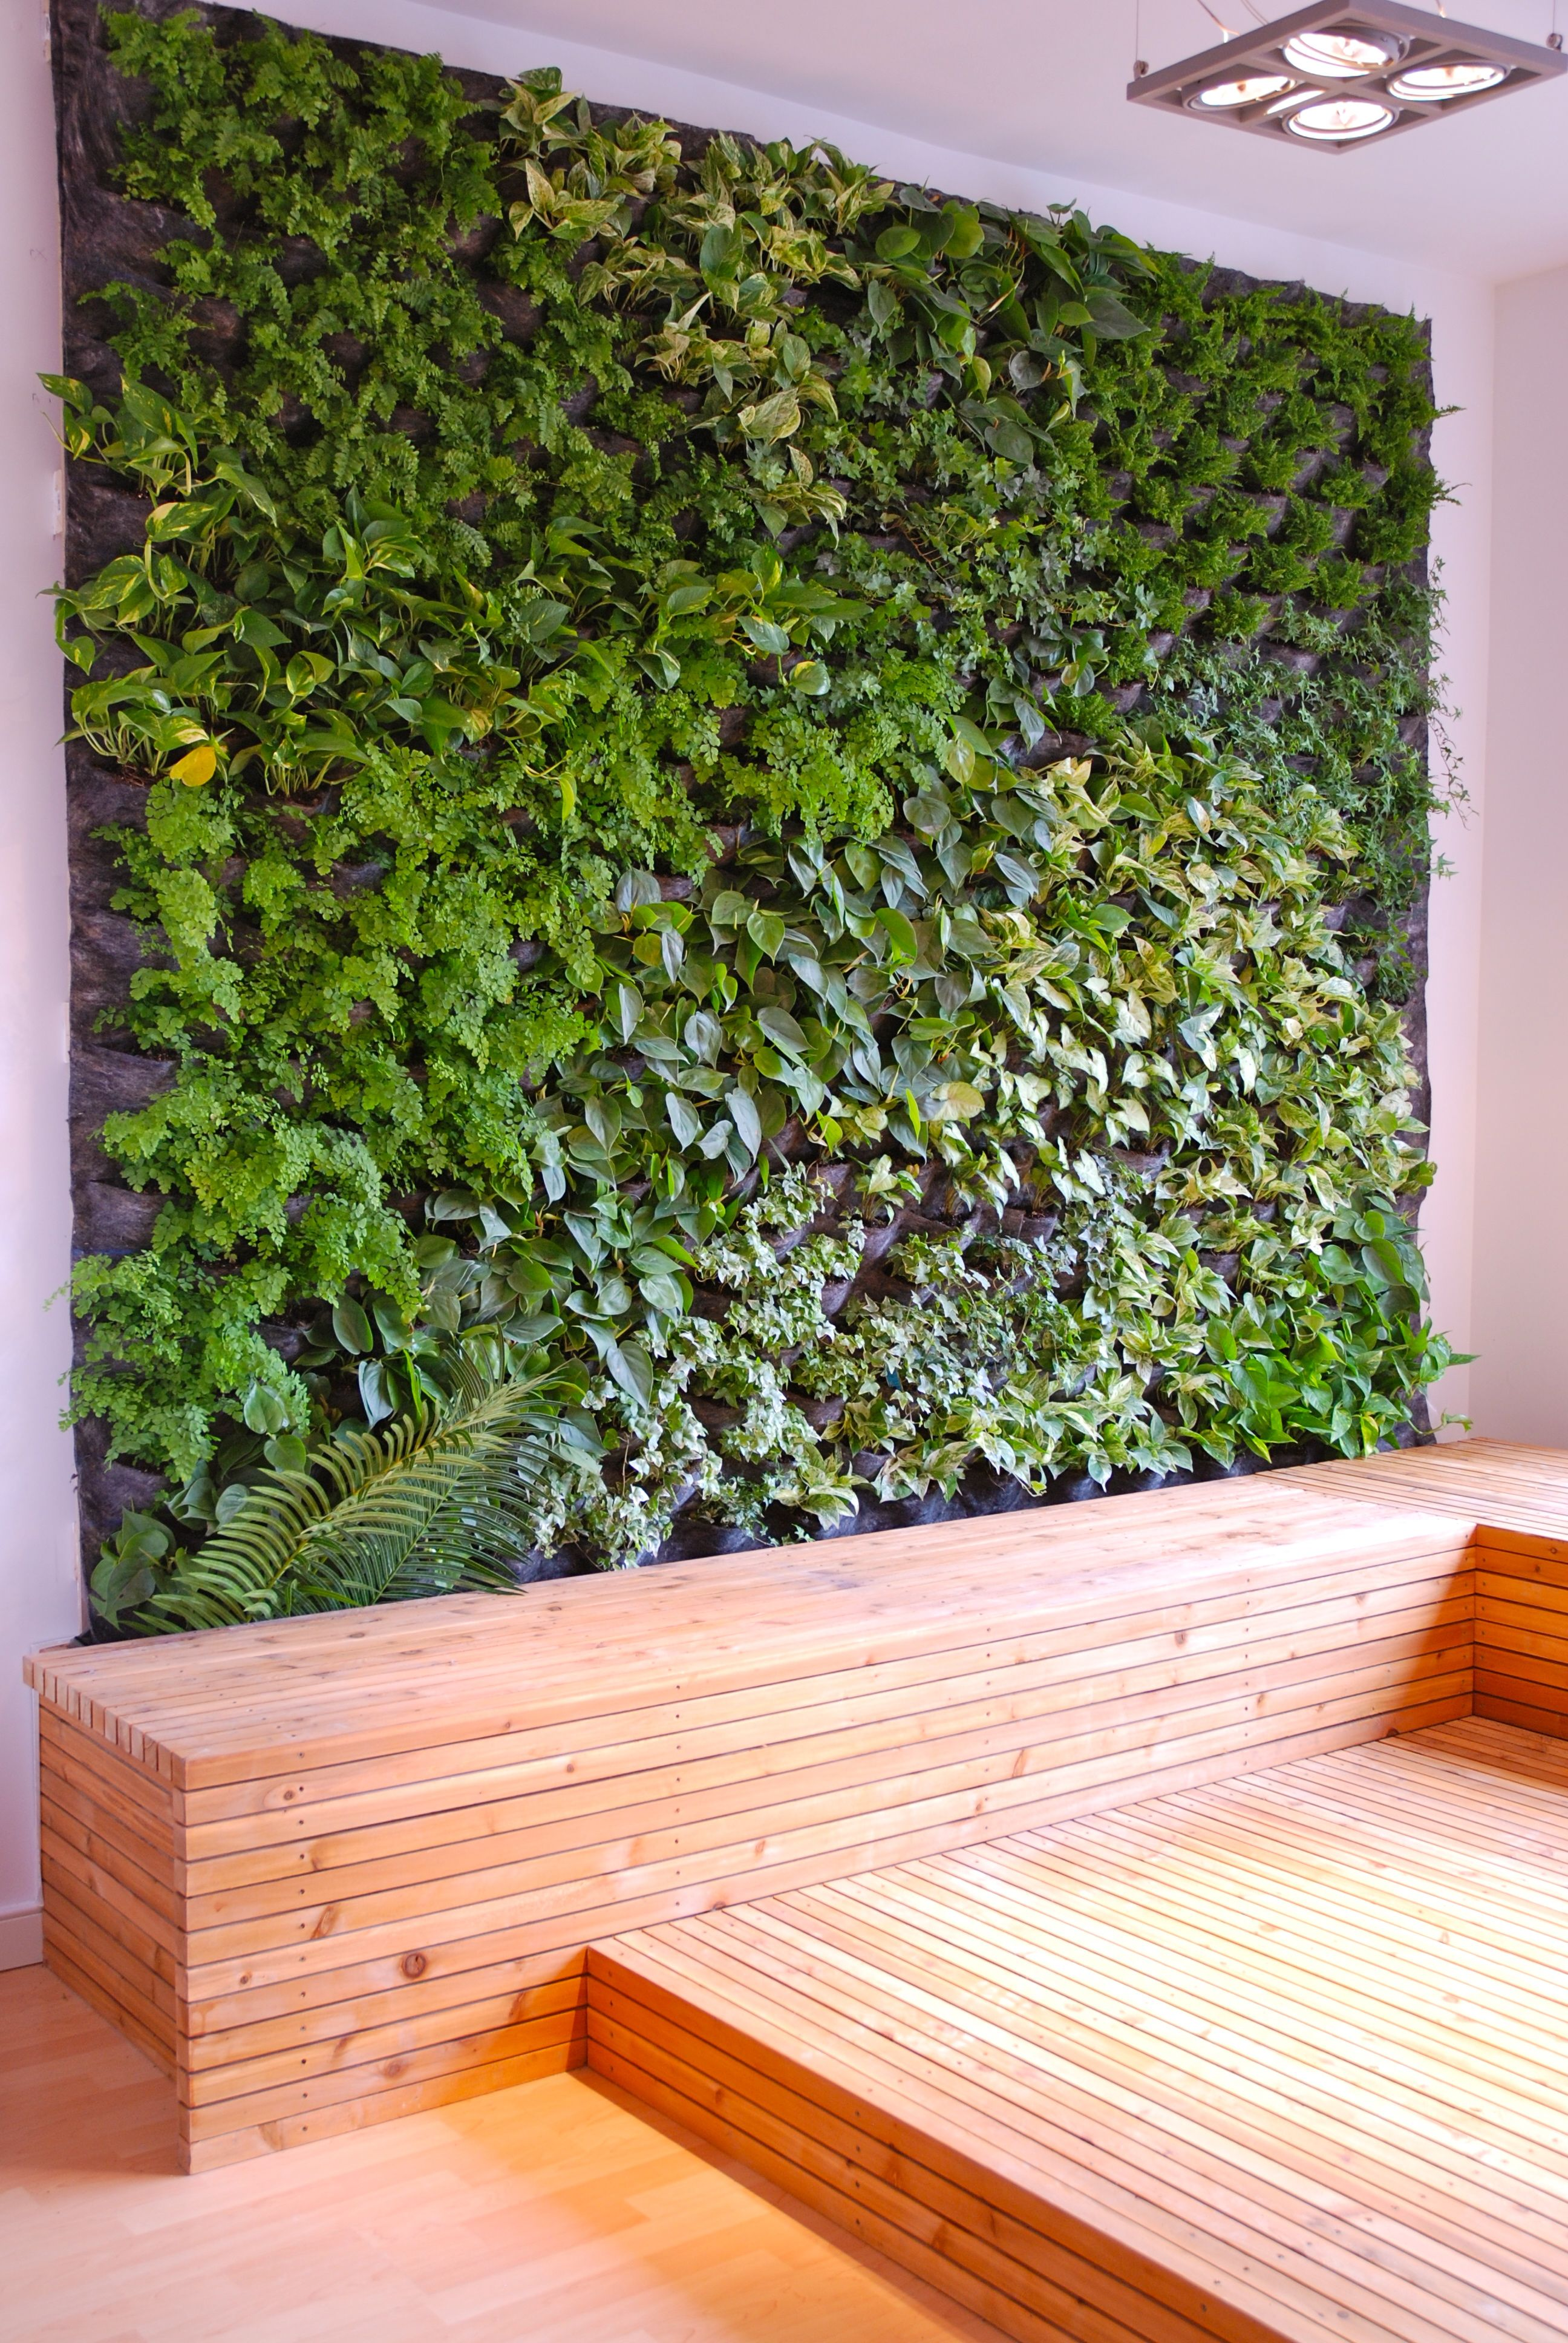 Living Wall Not Sure How I Feel About This But It S 640 x 480